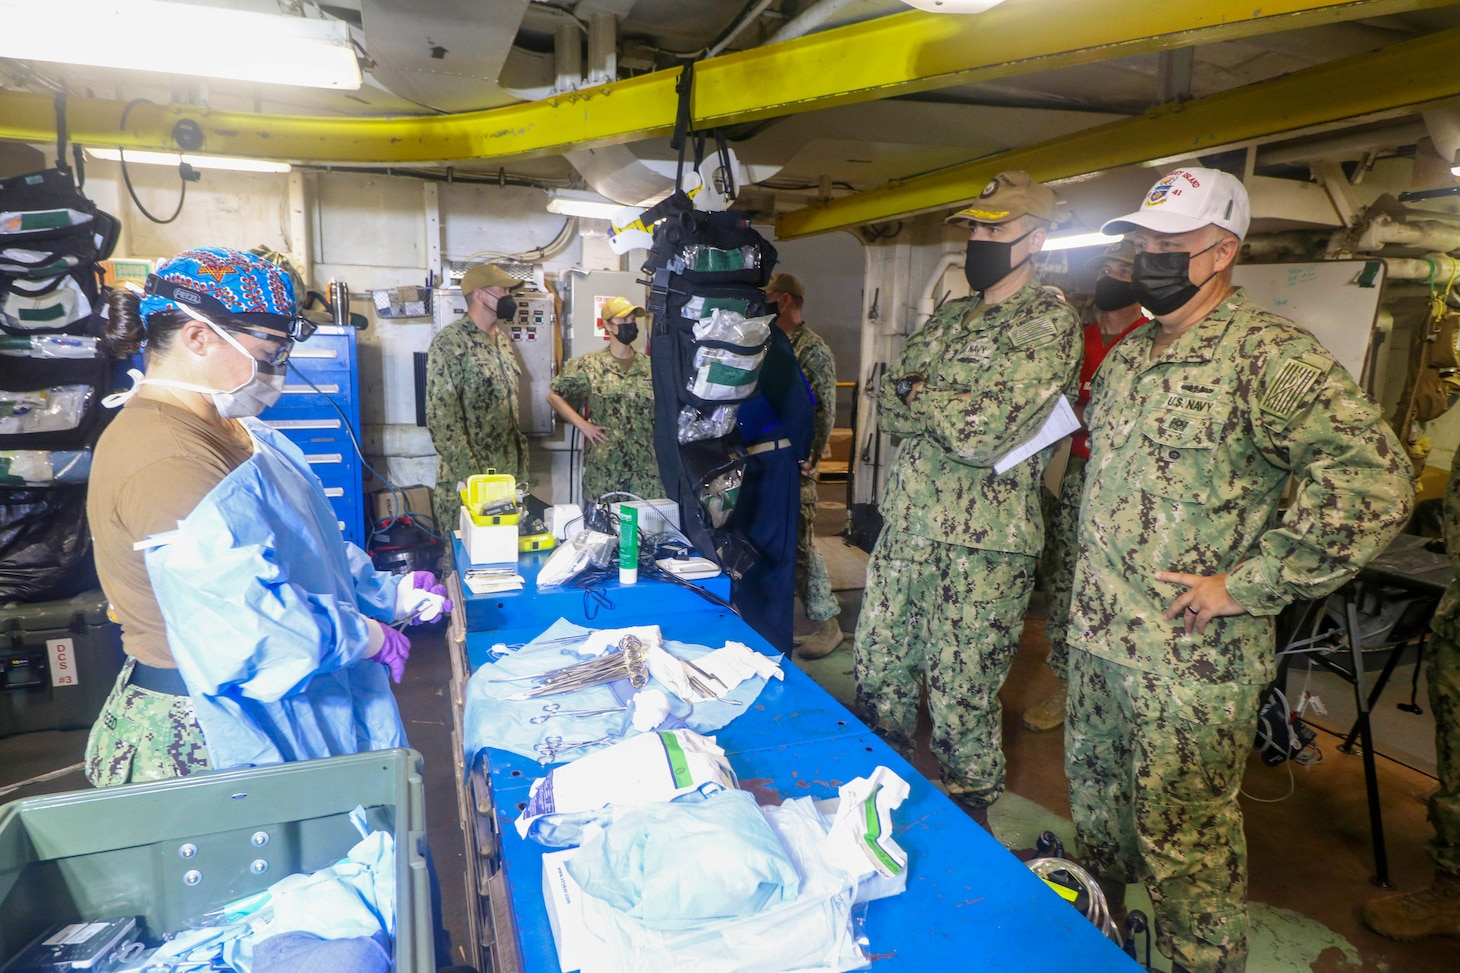 NAVAL STATION NORFOLK (Aug. 14, 2021) – Rear Adm. Darin Via, commander, Naval Medical Forces Atlantic, right, observes members of Fleet Surgical Team 4 in the operating room aboard the dock landing ship USS Whidbey Island (LSD 41), the lead ship of its class of the same name, during a mass casualty drill in support of Large Scale Exercise (LSE) 2021. LSE 2021 demonstrates the Navy's ability to employ precise, lethal, and overwhelming force globally across three naval component commands, five numbered fleets, and 17 time zones. (U.S. Navy photo by Ens. Drew Hendricks)